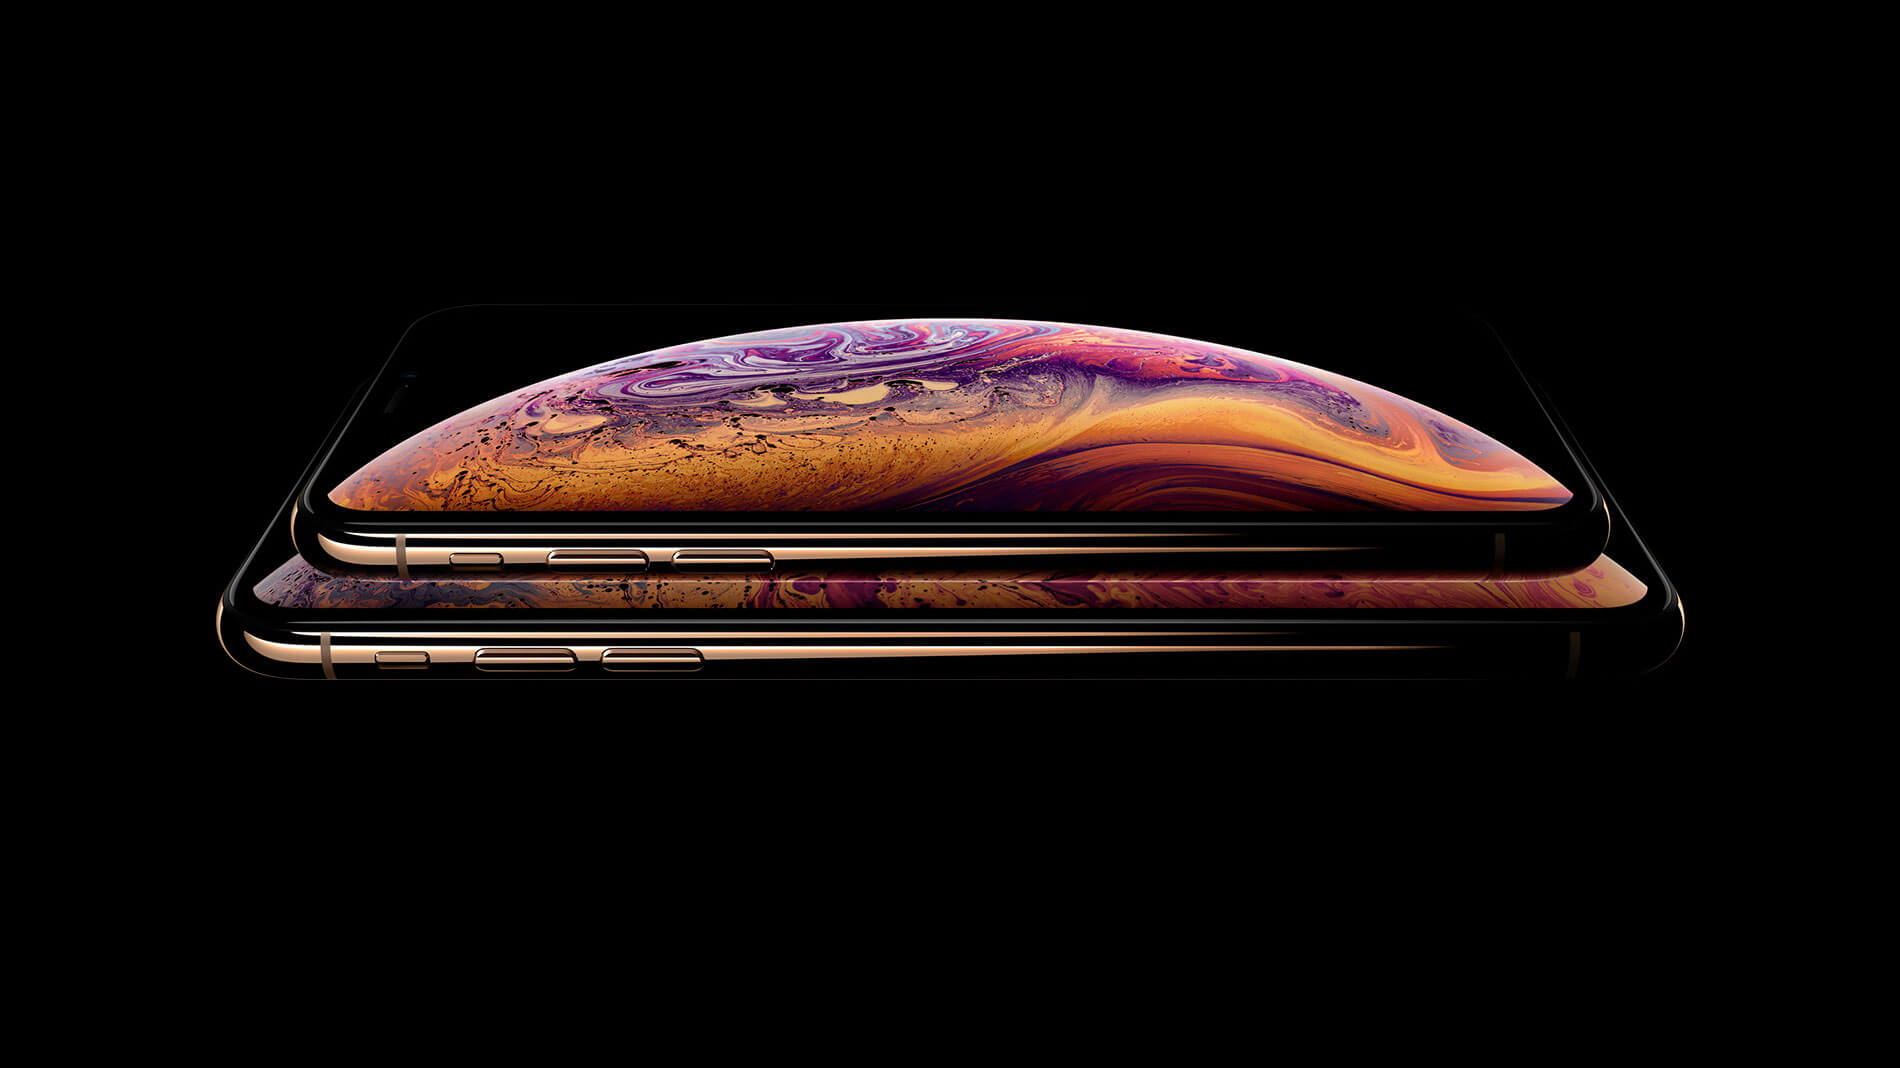 iPhone XS・iPhone XS Max・iPhone XRのスペック、価格比較